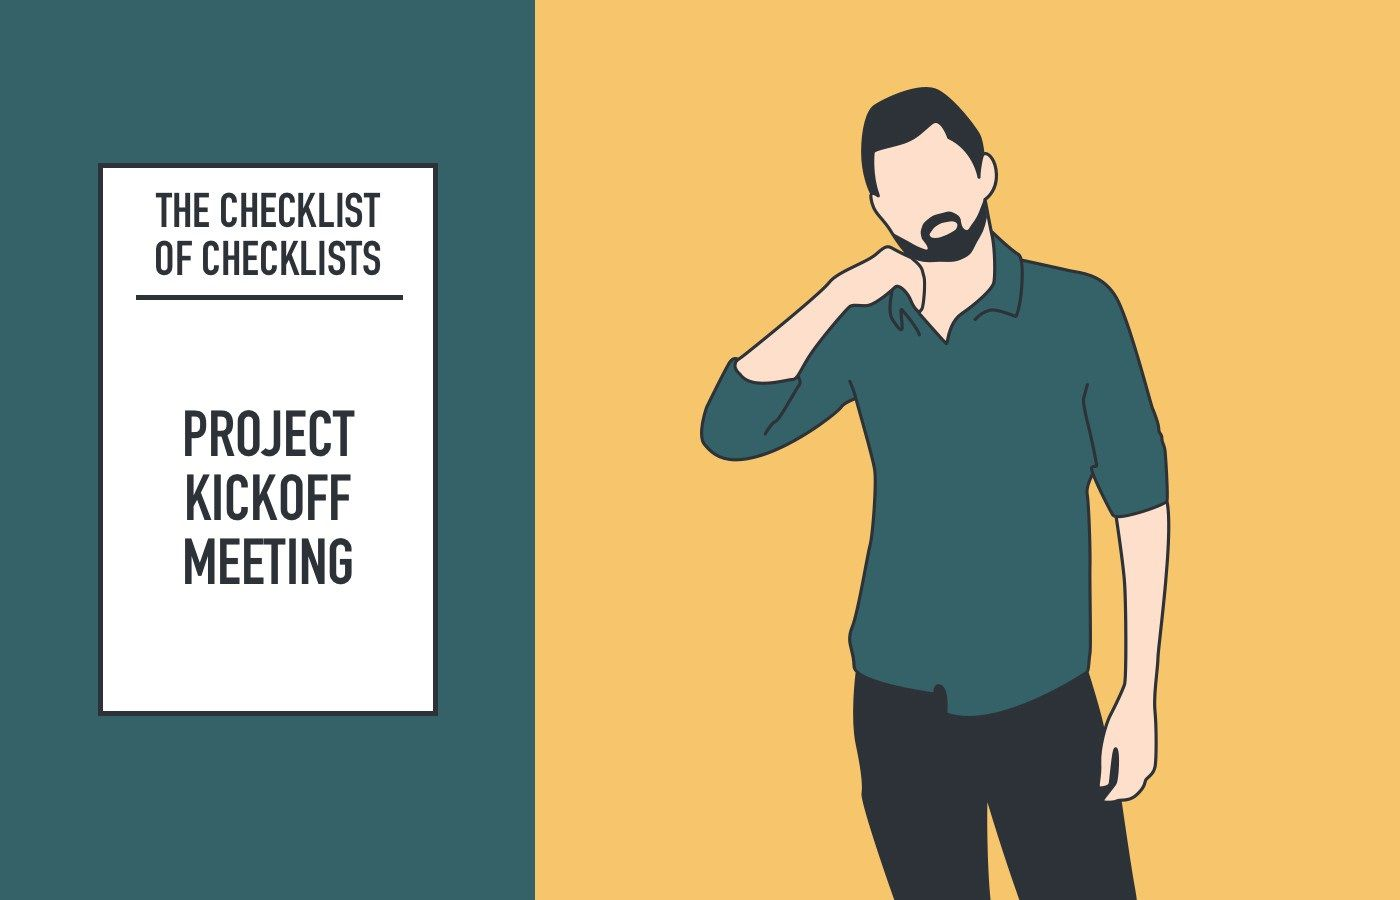 000 Singular Project Management Kickoff Meeting Template Image  PptFull